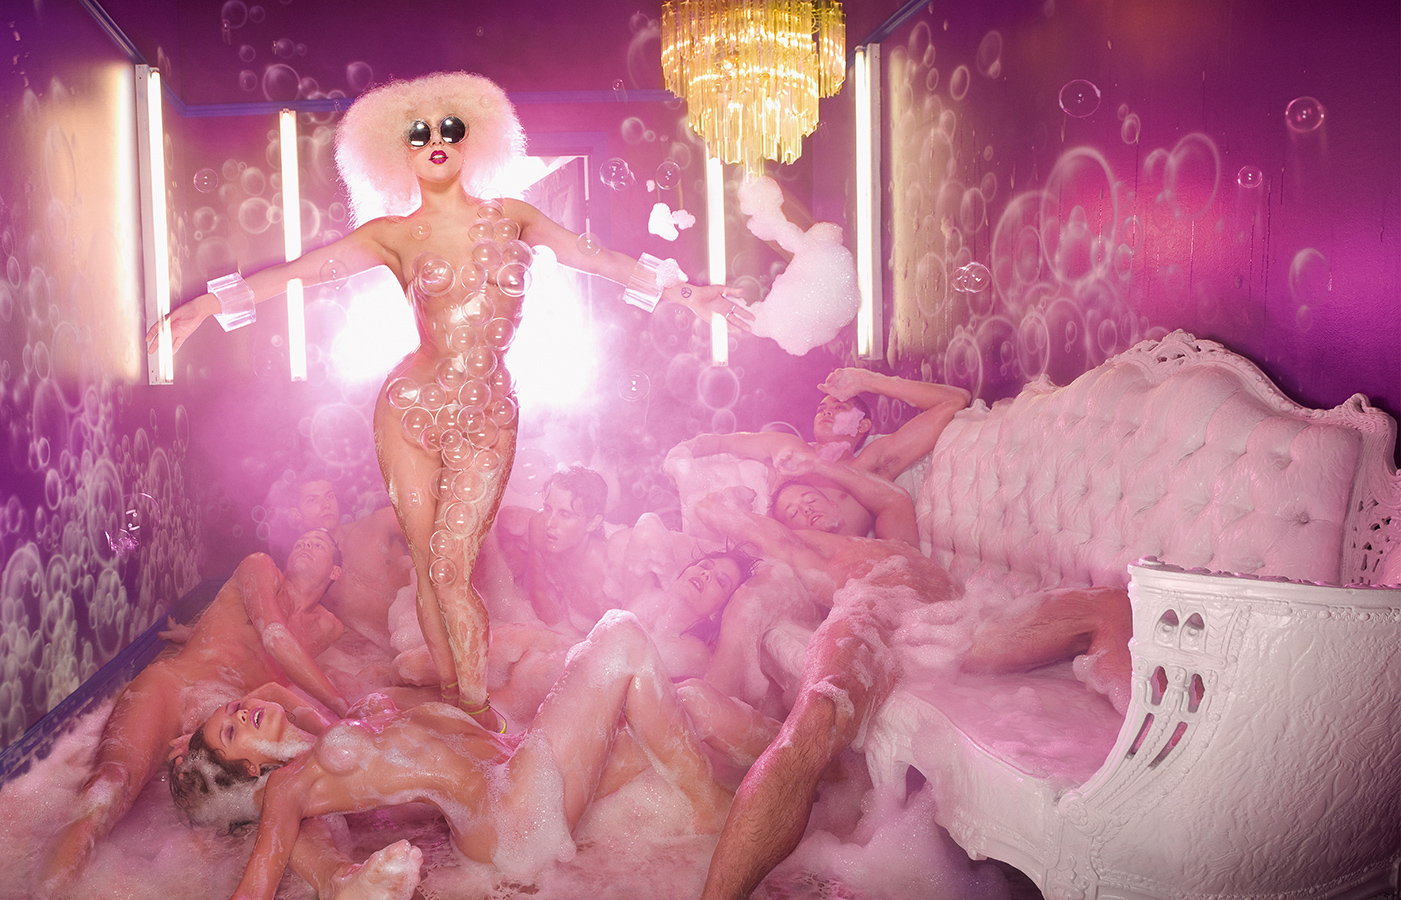 David LaChapelle on Lady Gaga, Tupac Shakur and Working for Andy Warhol